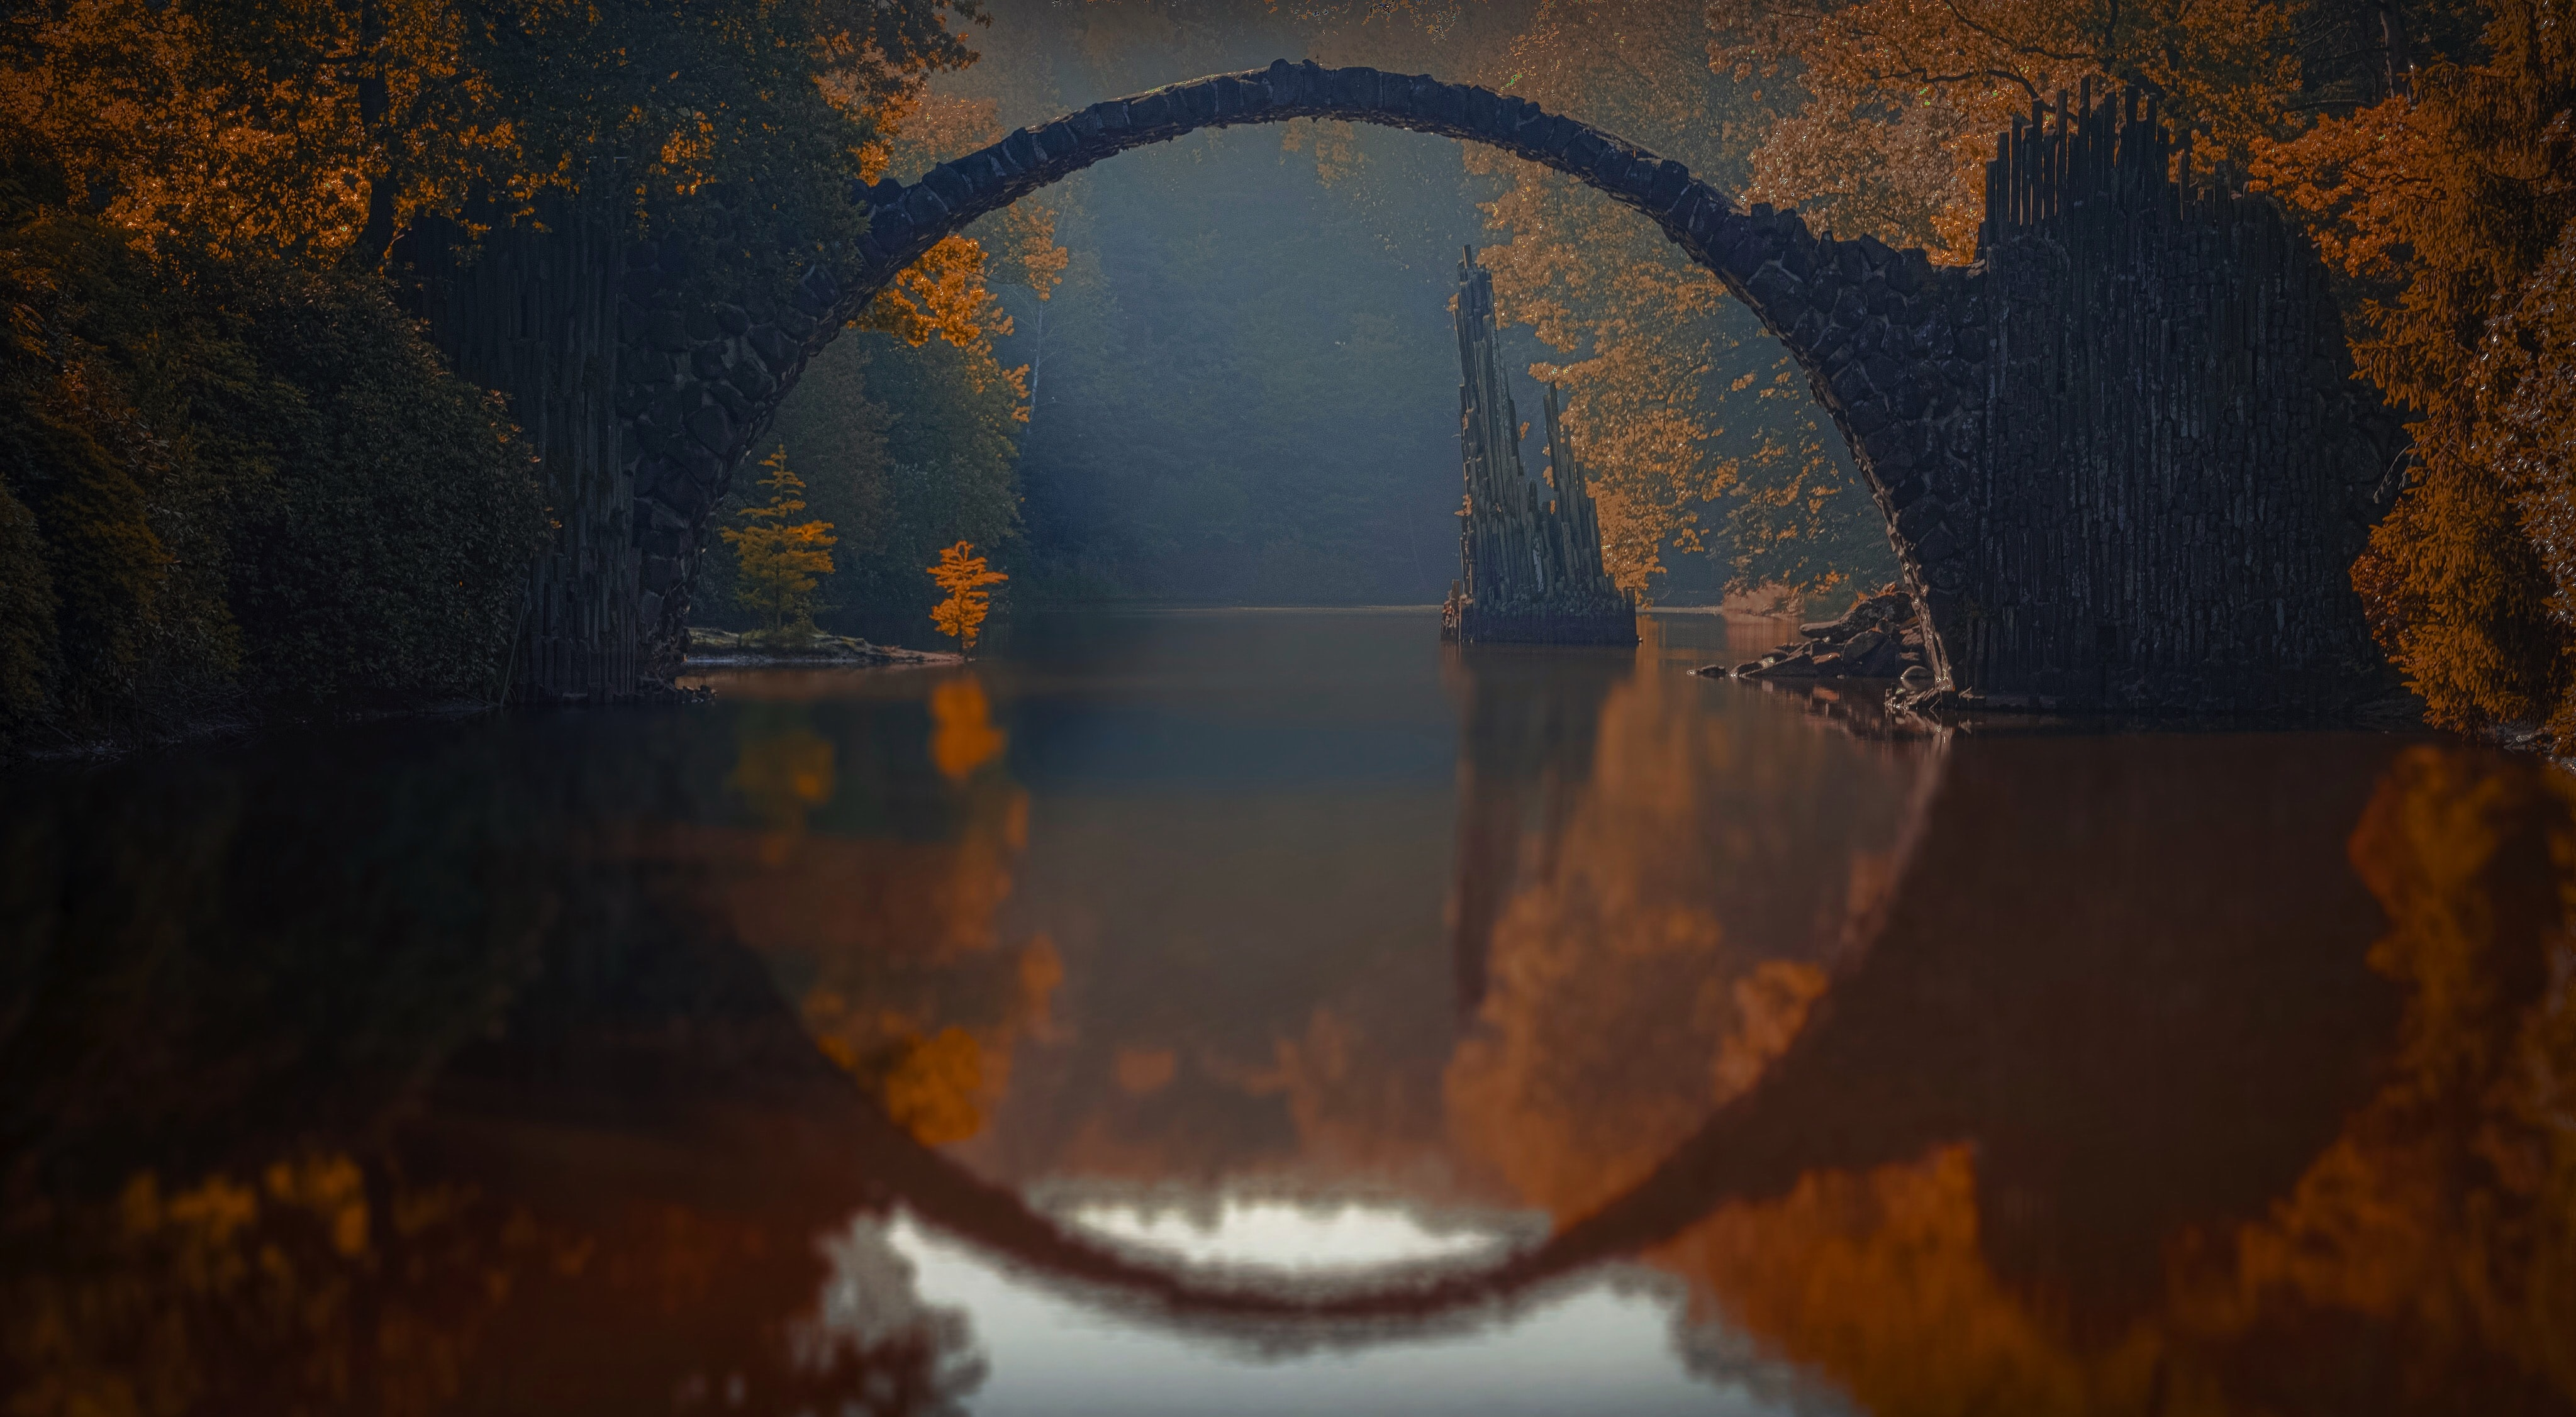 curved bridge in the middle of foreset